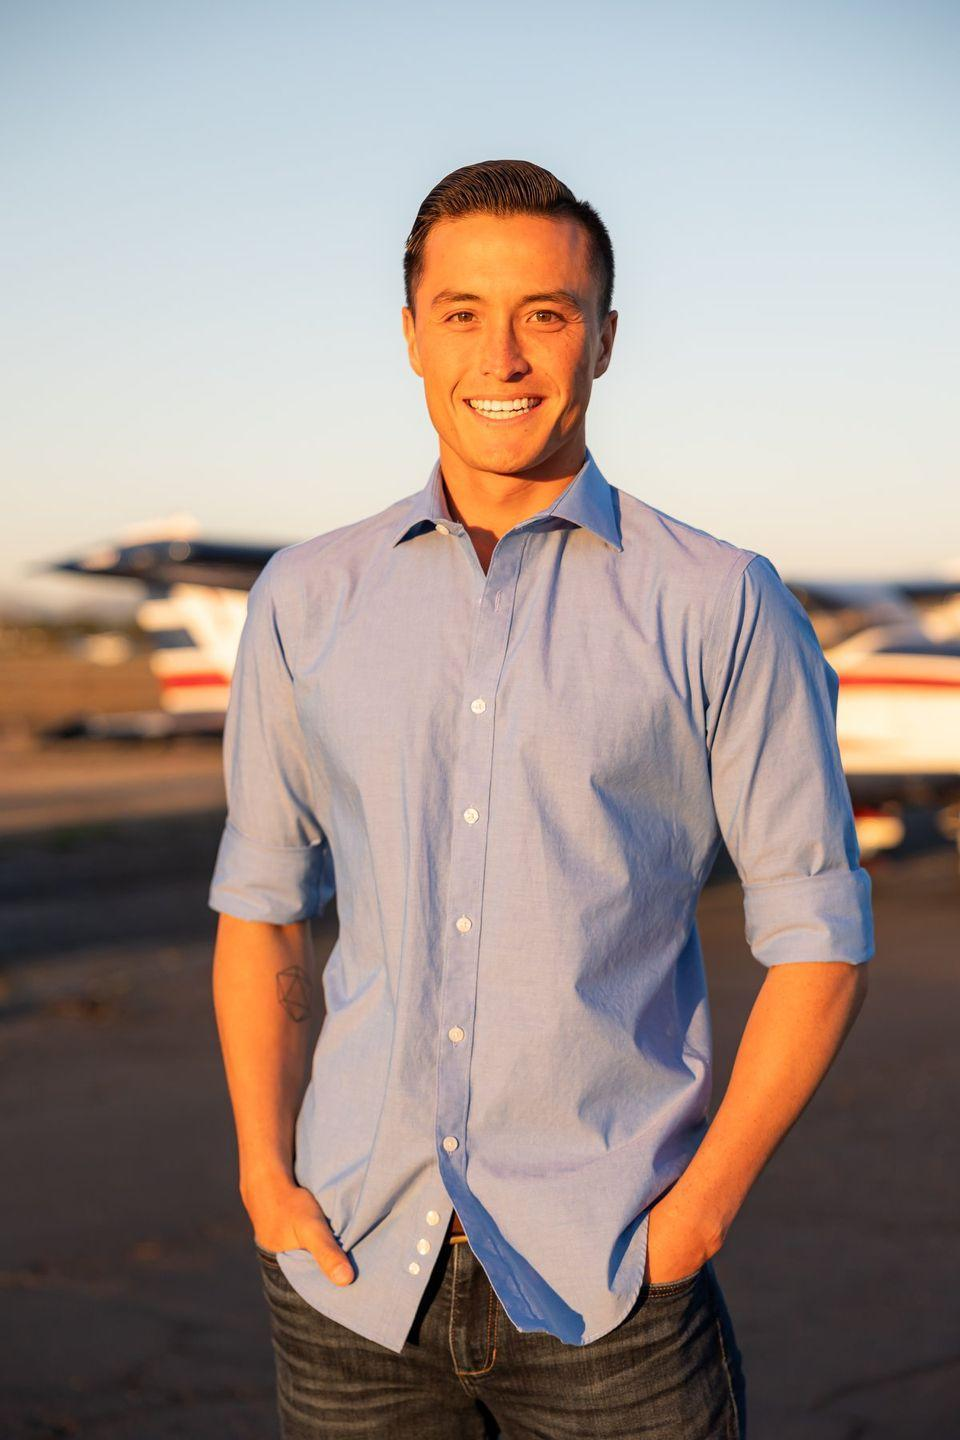 """<p>Is that an airplane in the background of his pic I see? Yes, and he is training to become a pilot. Here's hoping he's nothing like Pilot Pete. John does have golden hour lighting working in his favor.</p><p><strong>Age: 27</strong></p><p><strong>Hometown: Santa Cruz, CA</strong></p><p><strong>Instagram: <a href=""""https://www.instagram.com/johnalexhersey/"""" rel=""""nofollow noopener"""" target=""""_blank"""" data-ylk=""""slk:@johnalexhersey"""" class=""""link rapid-noclick-resp"""">@johnalexhersey</a></strong></p>"""